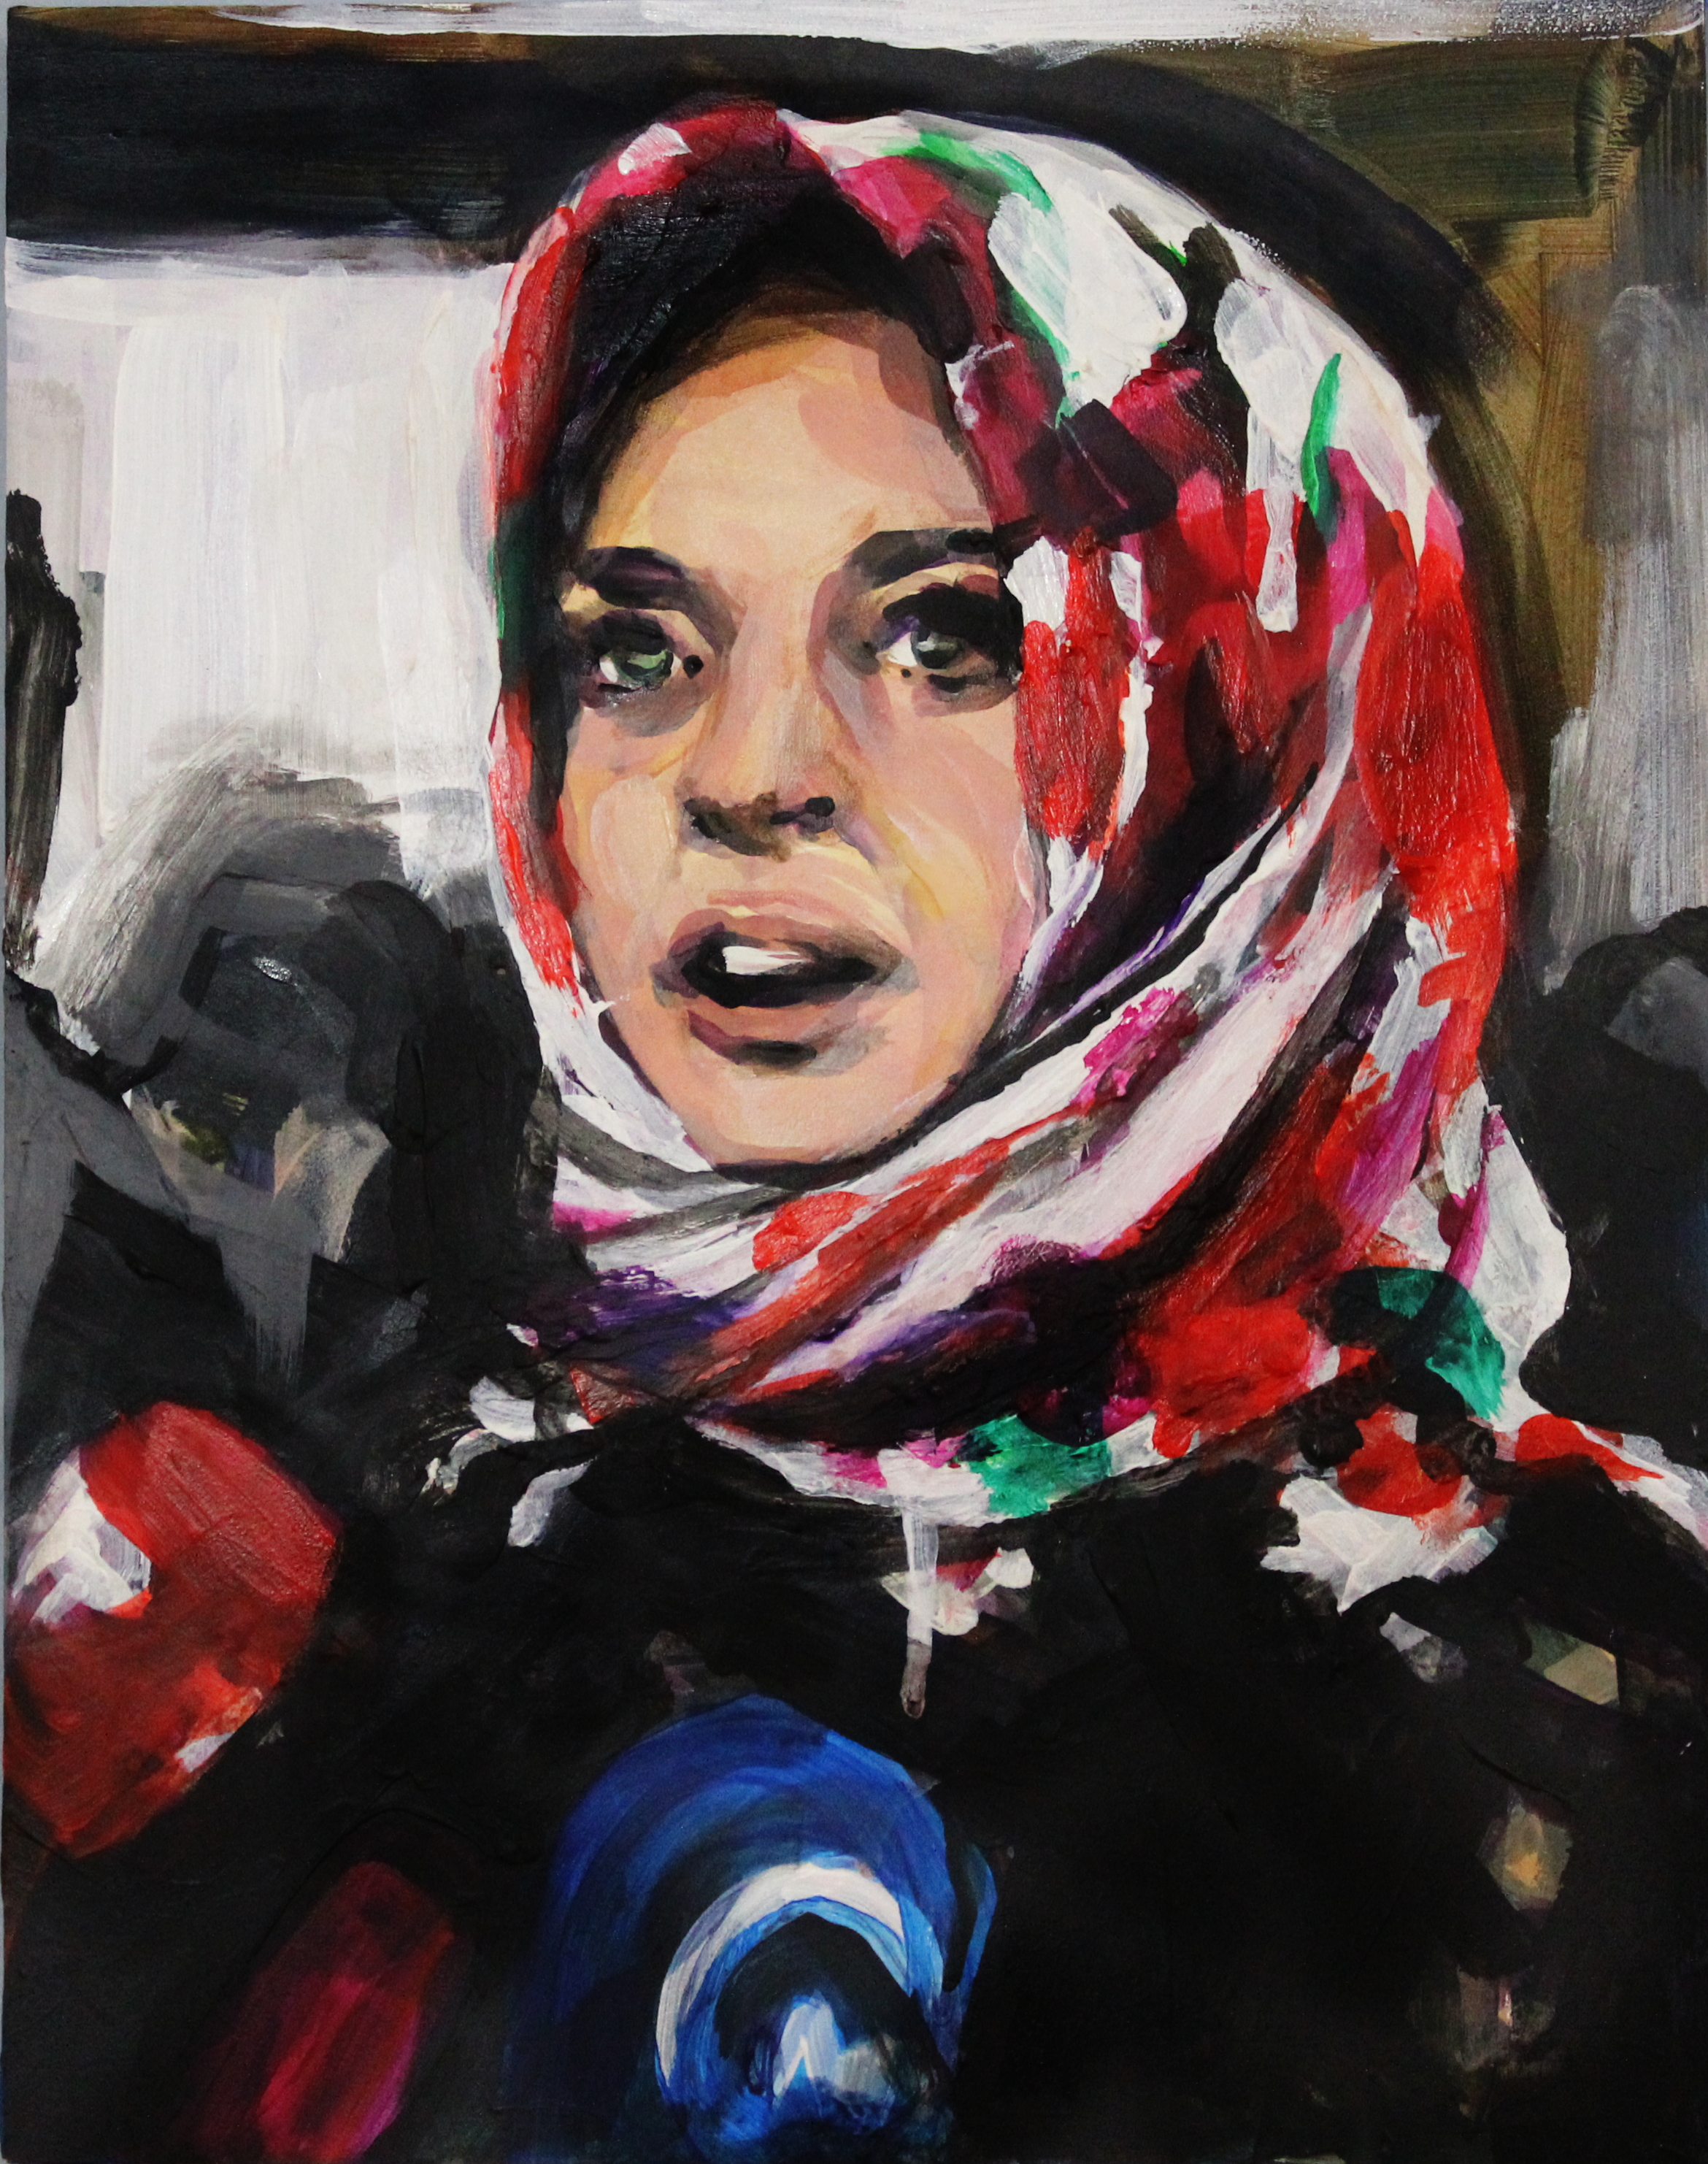 "Lindsay Lohan in a Floral Hijab   11"" x 14"" acrylic on panel"